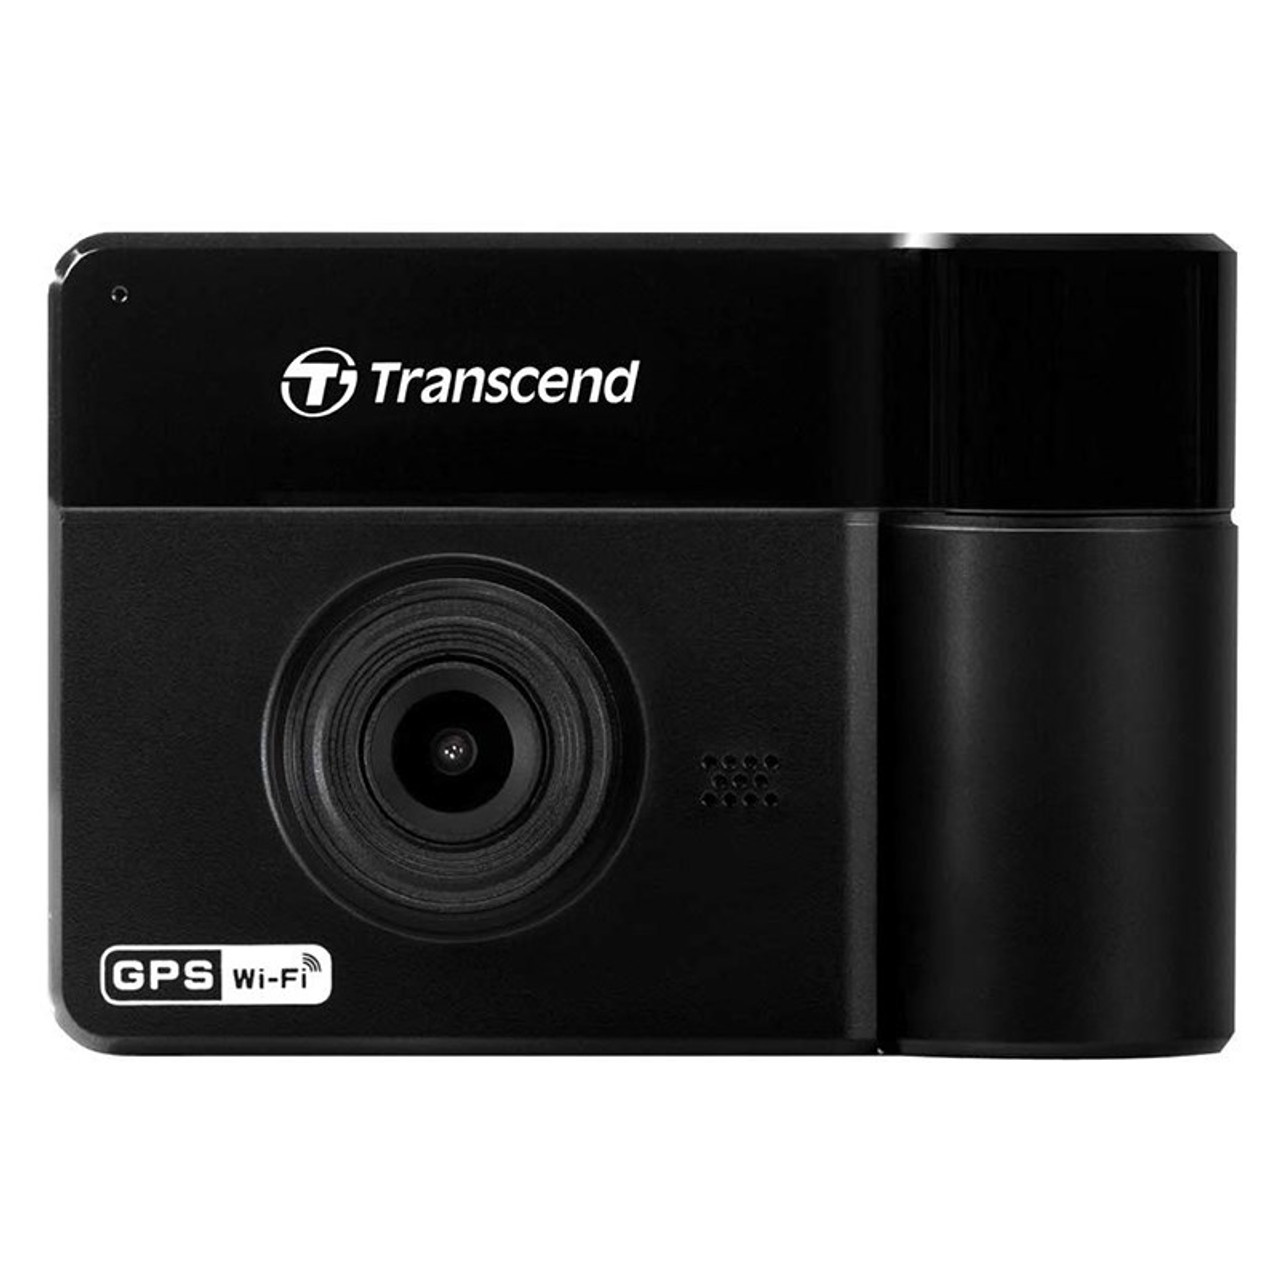 Image for Transcend DrivePro 550 32GB Dual Lens 2.4in LCD Full HD Dash Cam CX Computer Superstore